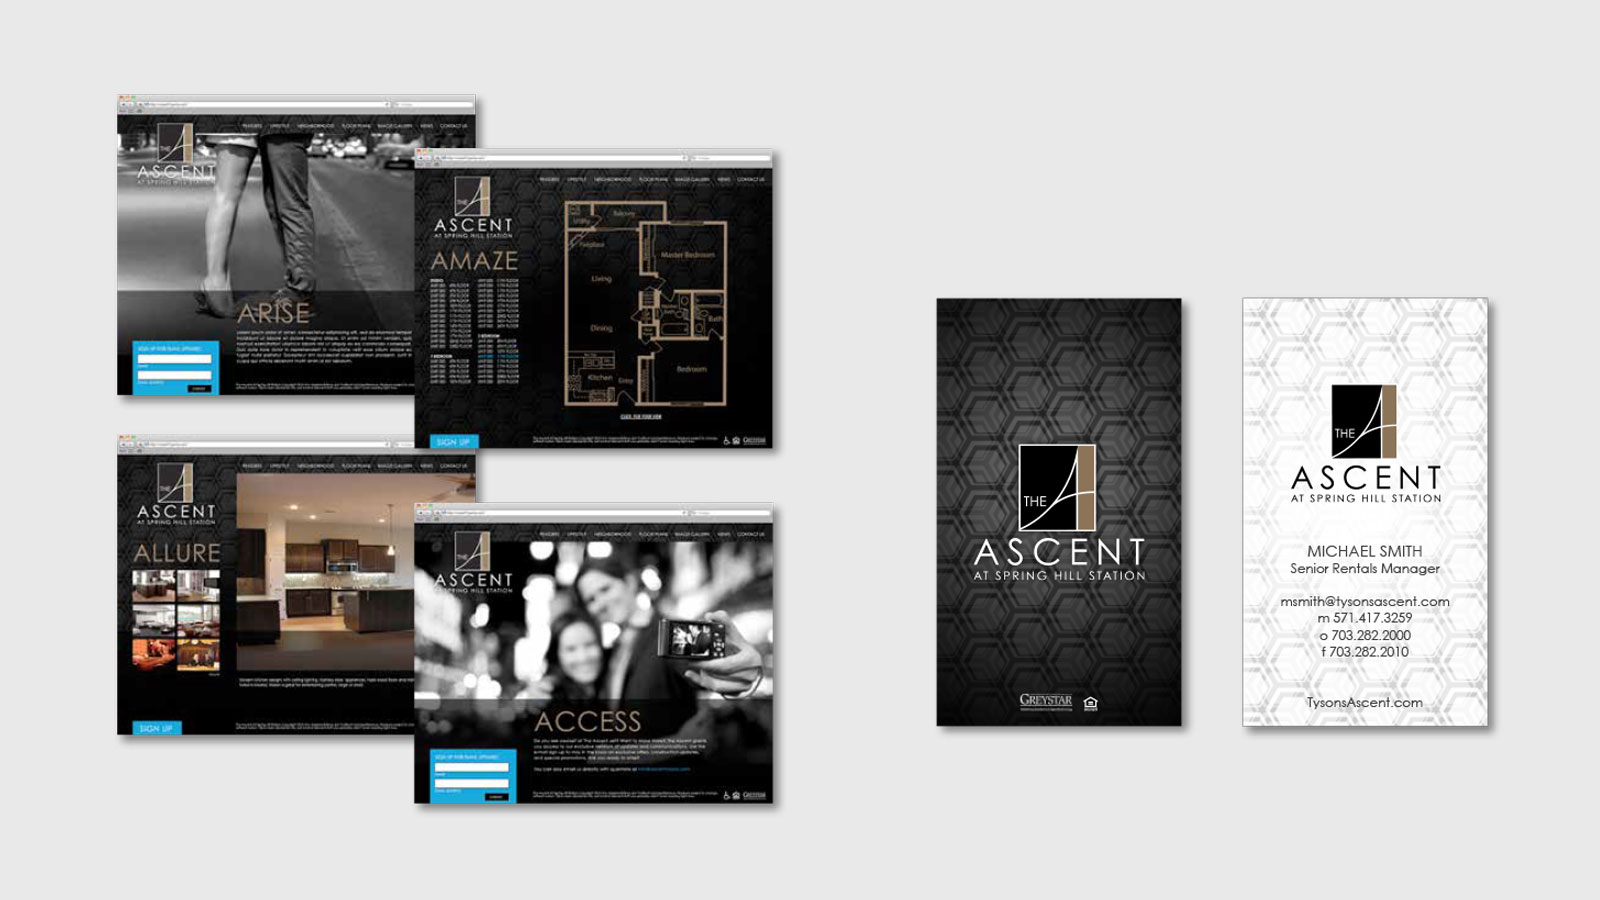 Ascent-Gallery3